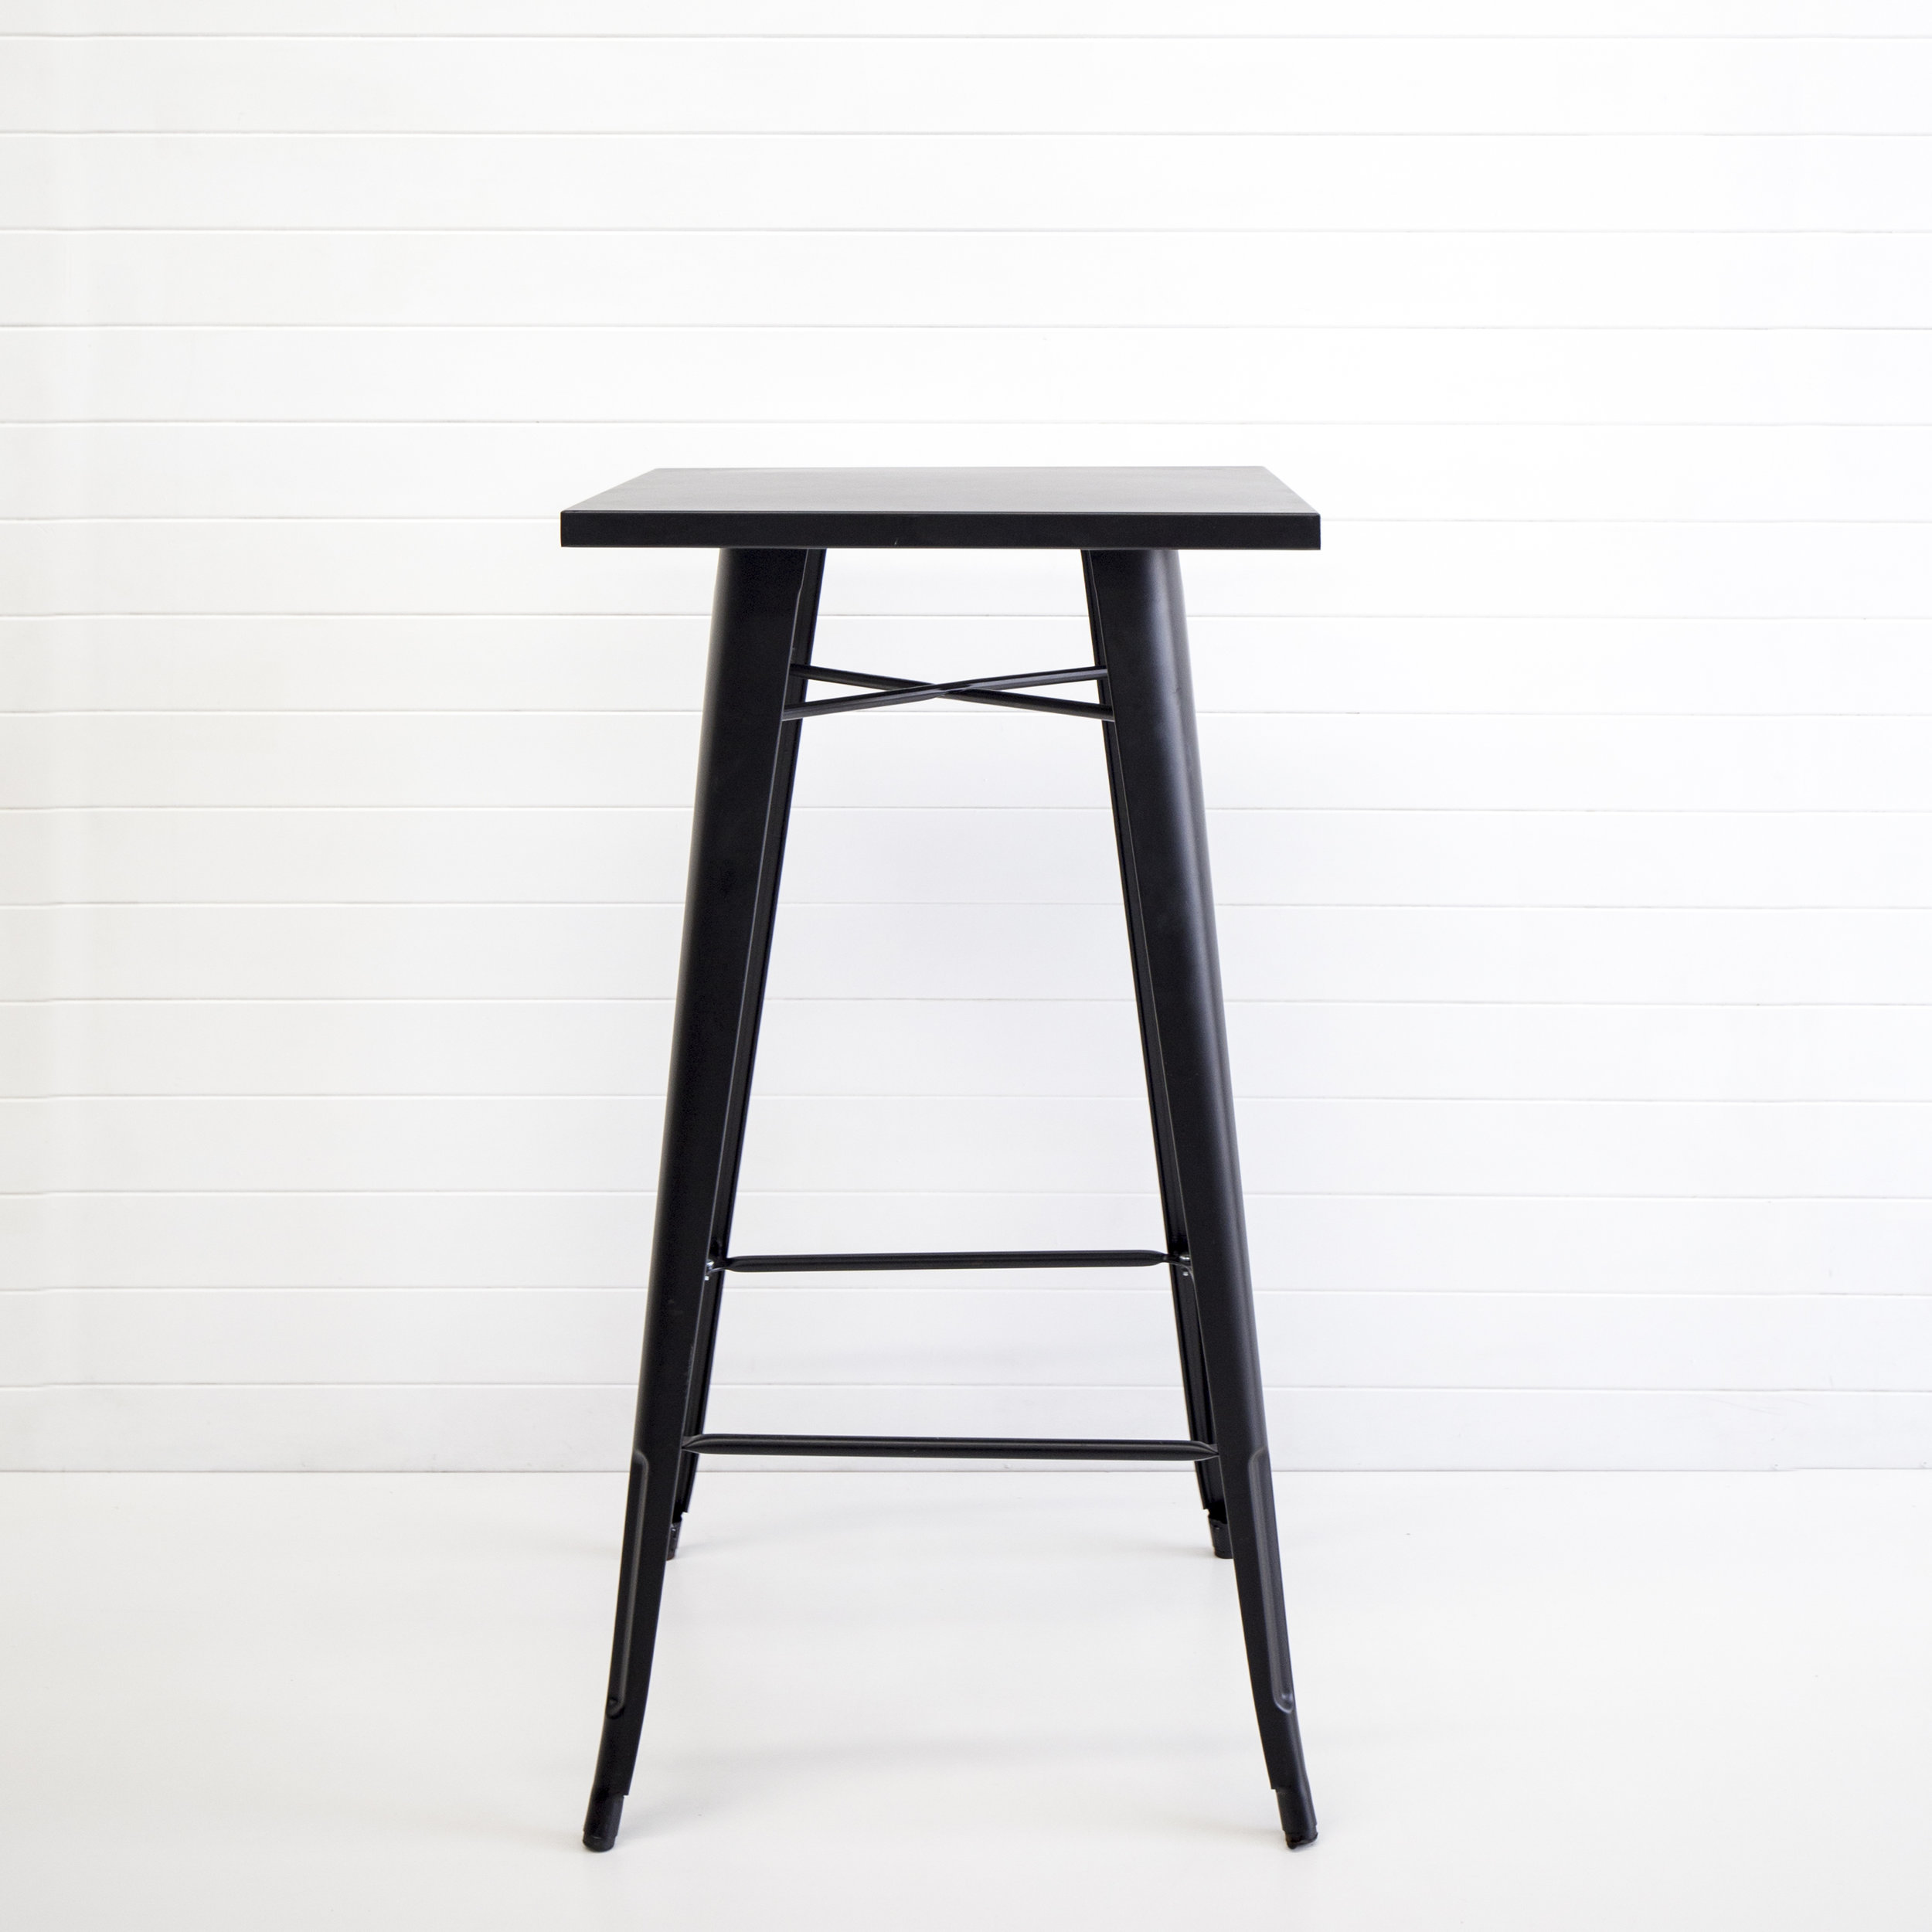 Matte black tolix dry bar table.jpg